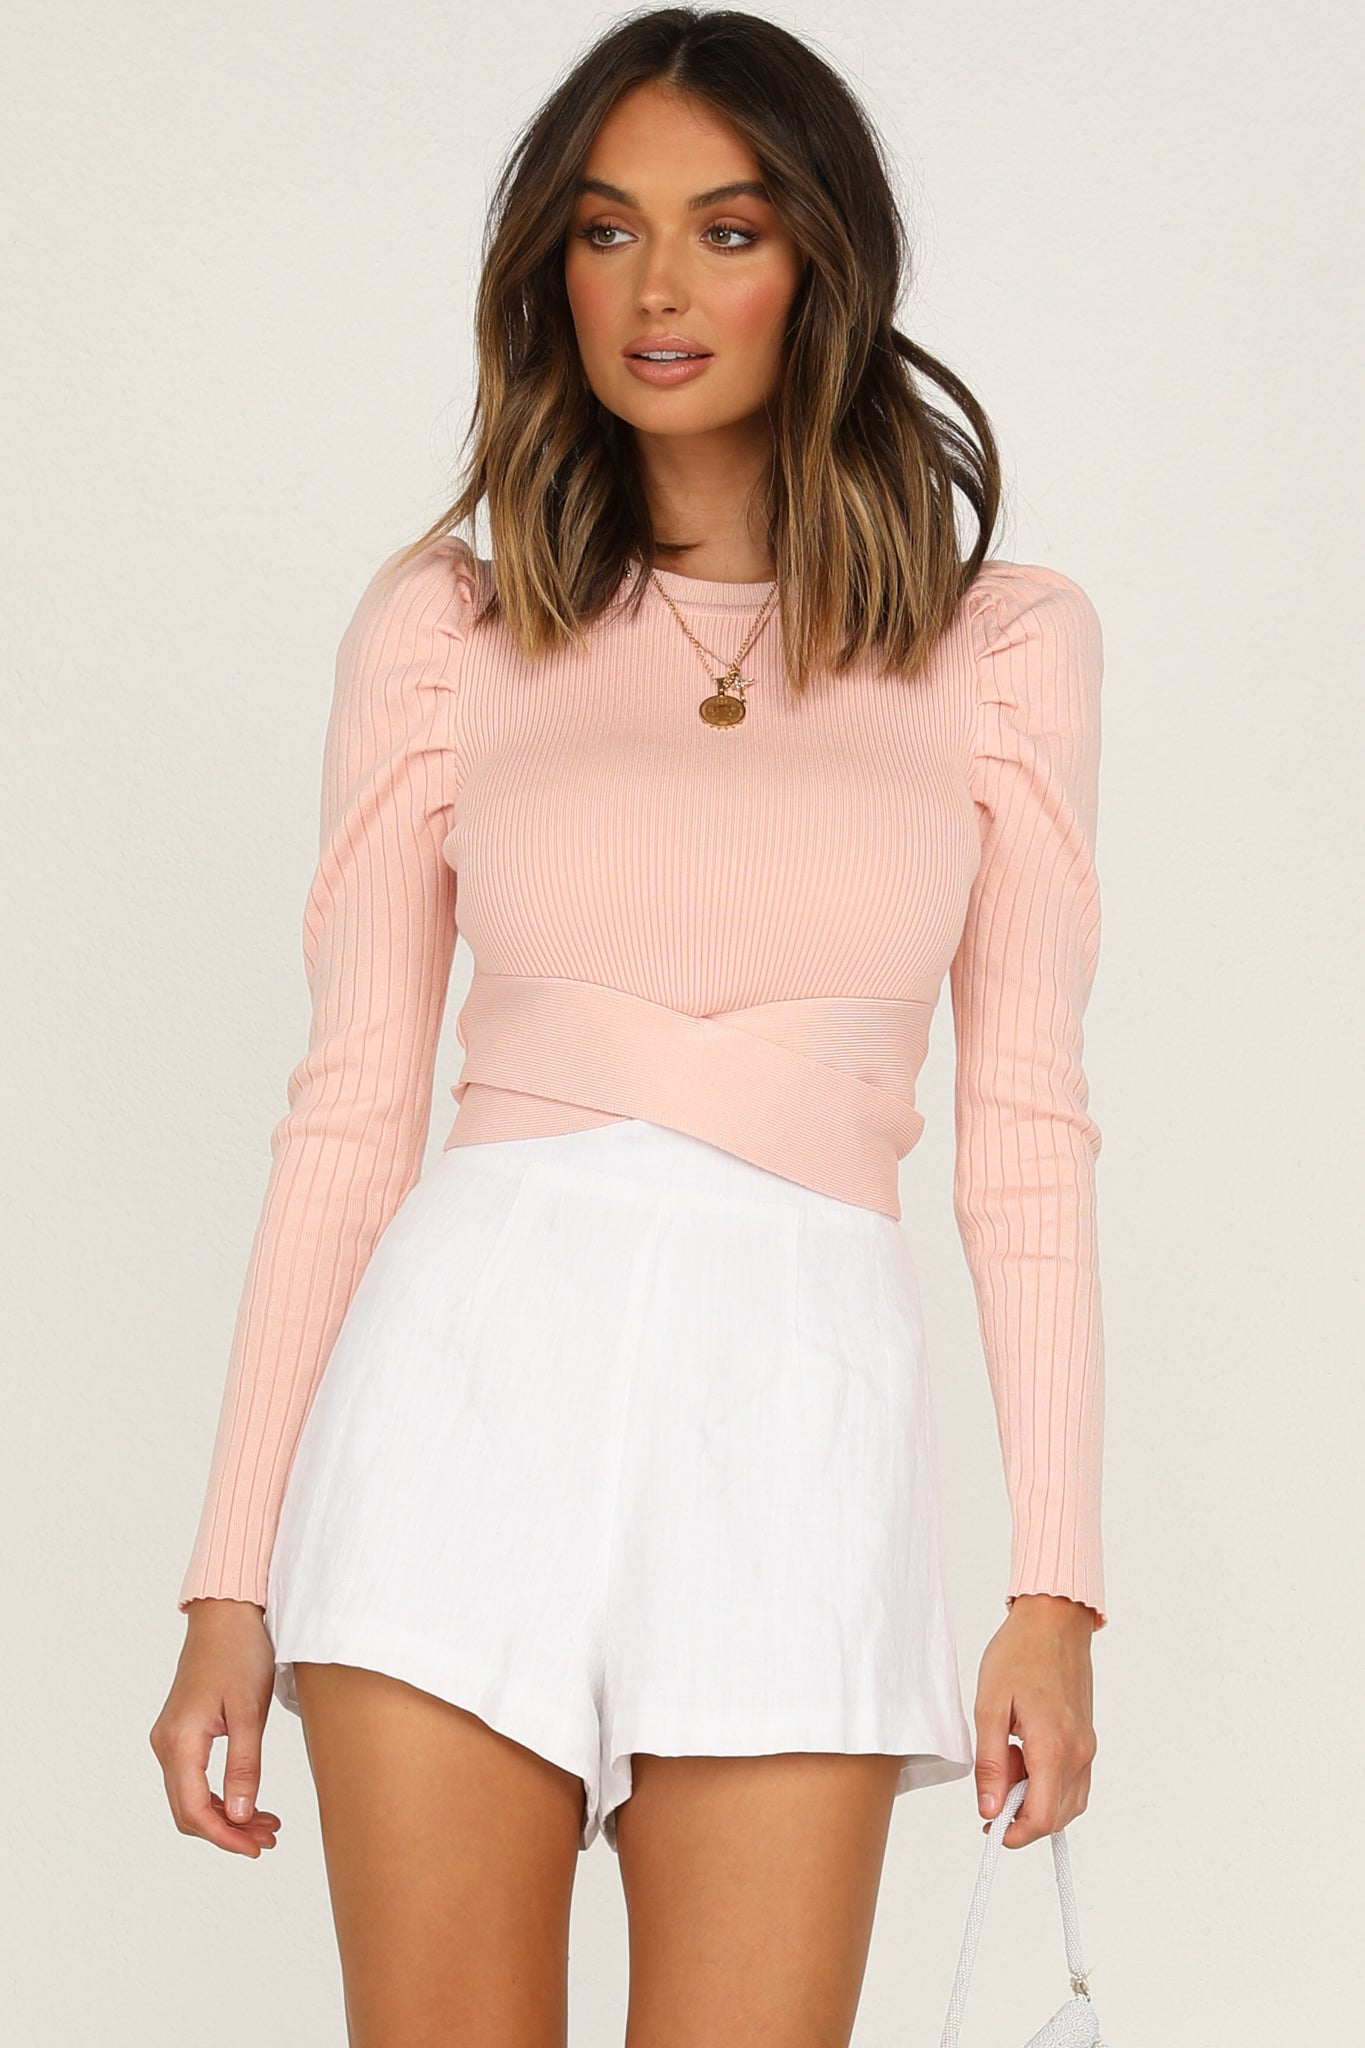 Fall From Heaven Top (Pink)